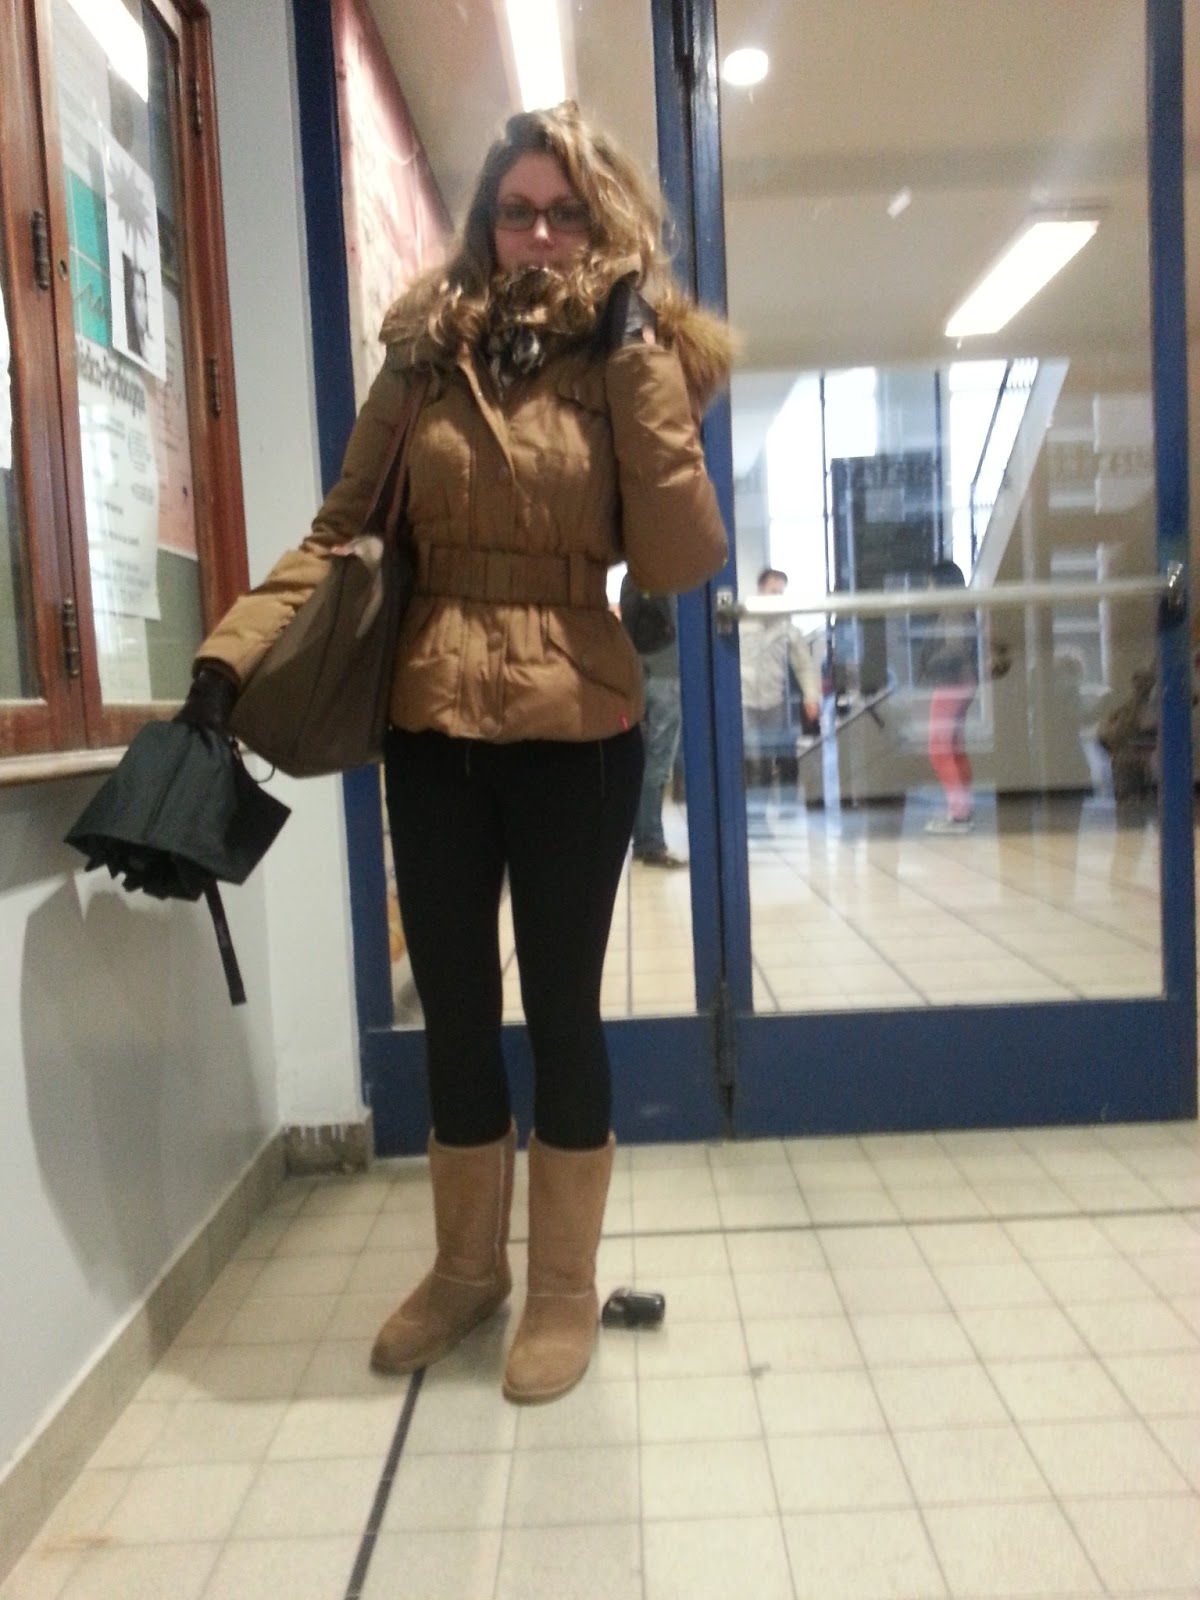 Low Street Fashion Outfit in camel tone for winter - Tenue ton u0026quot;camelu0026quot; pour lu0026#39;hiver